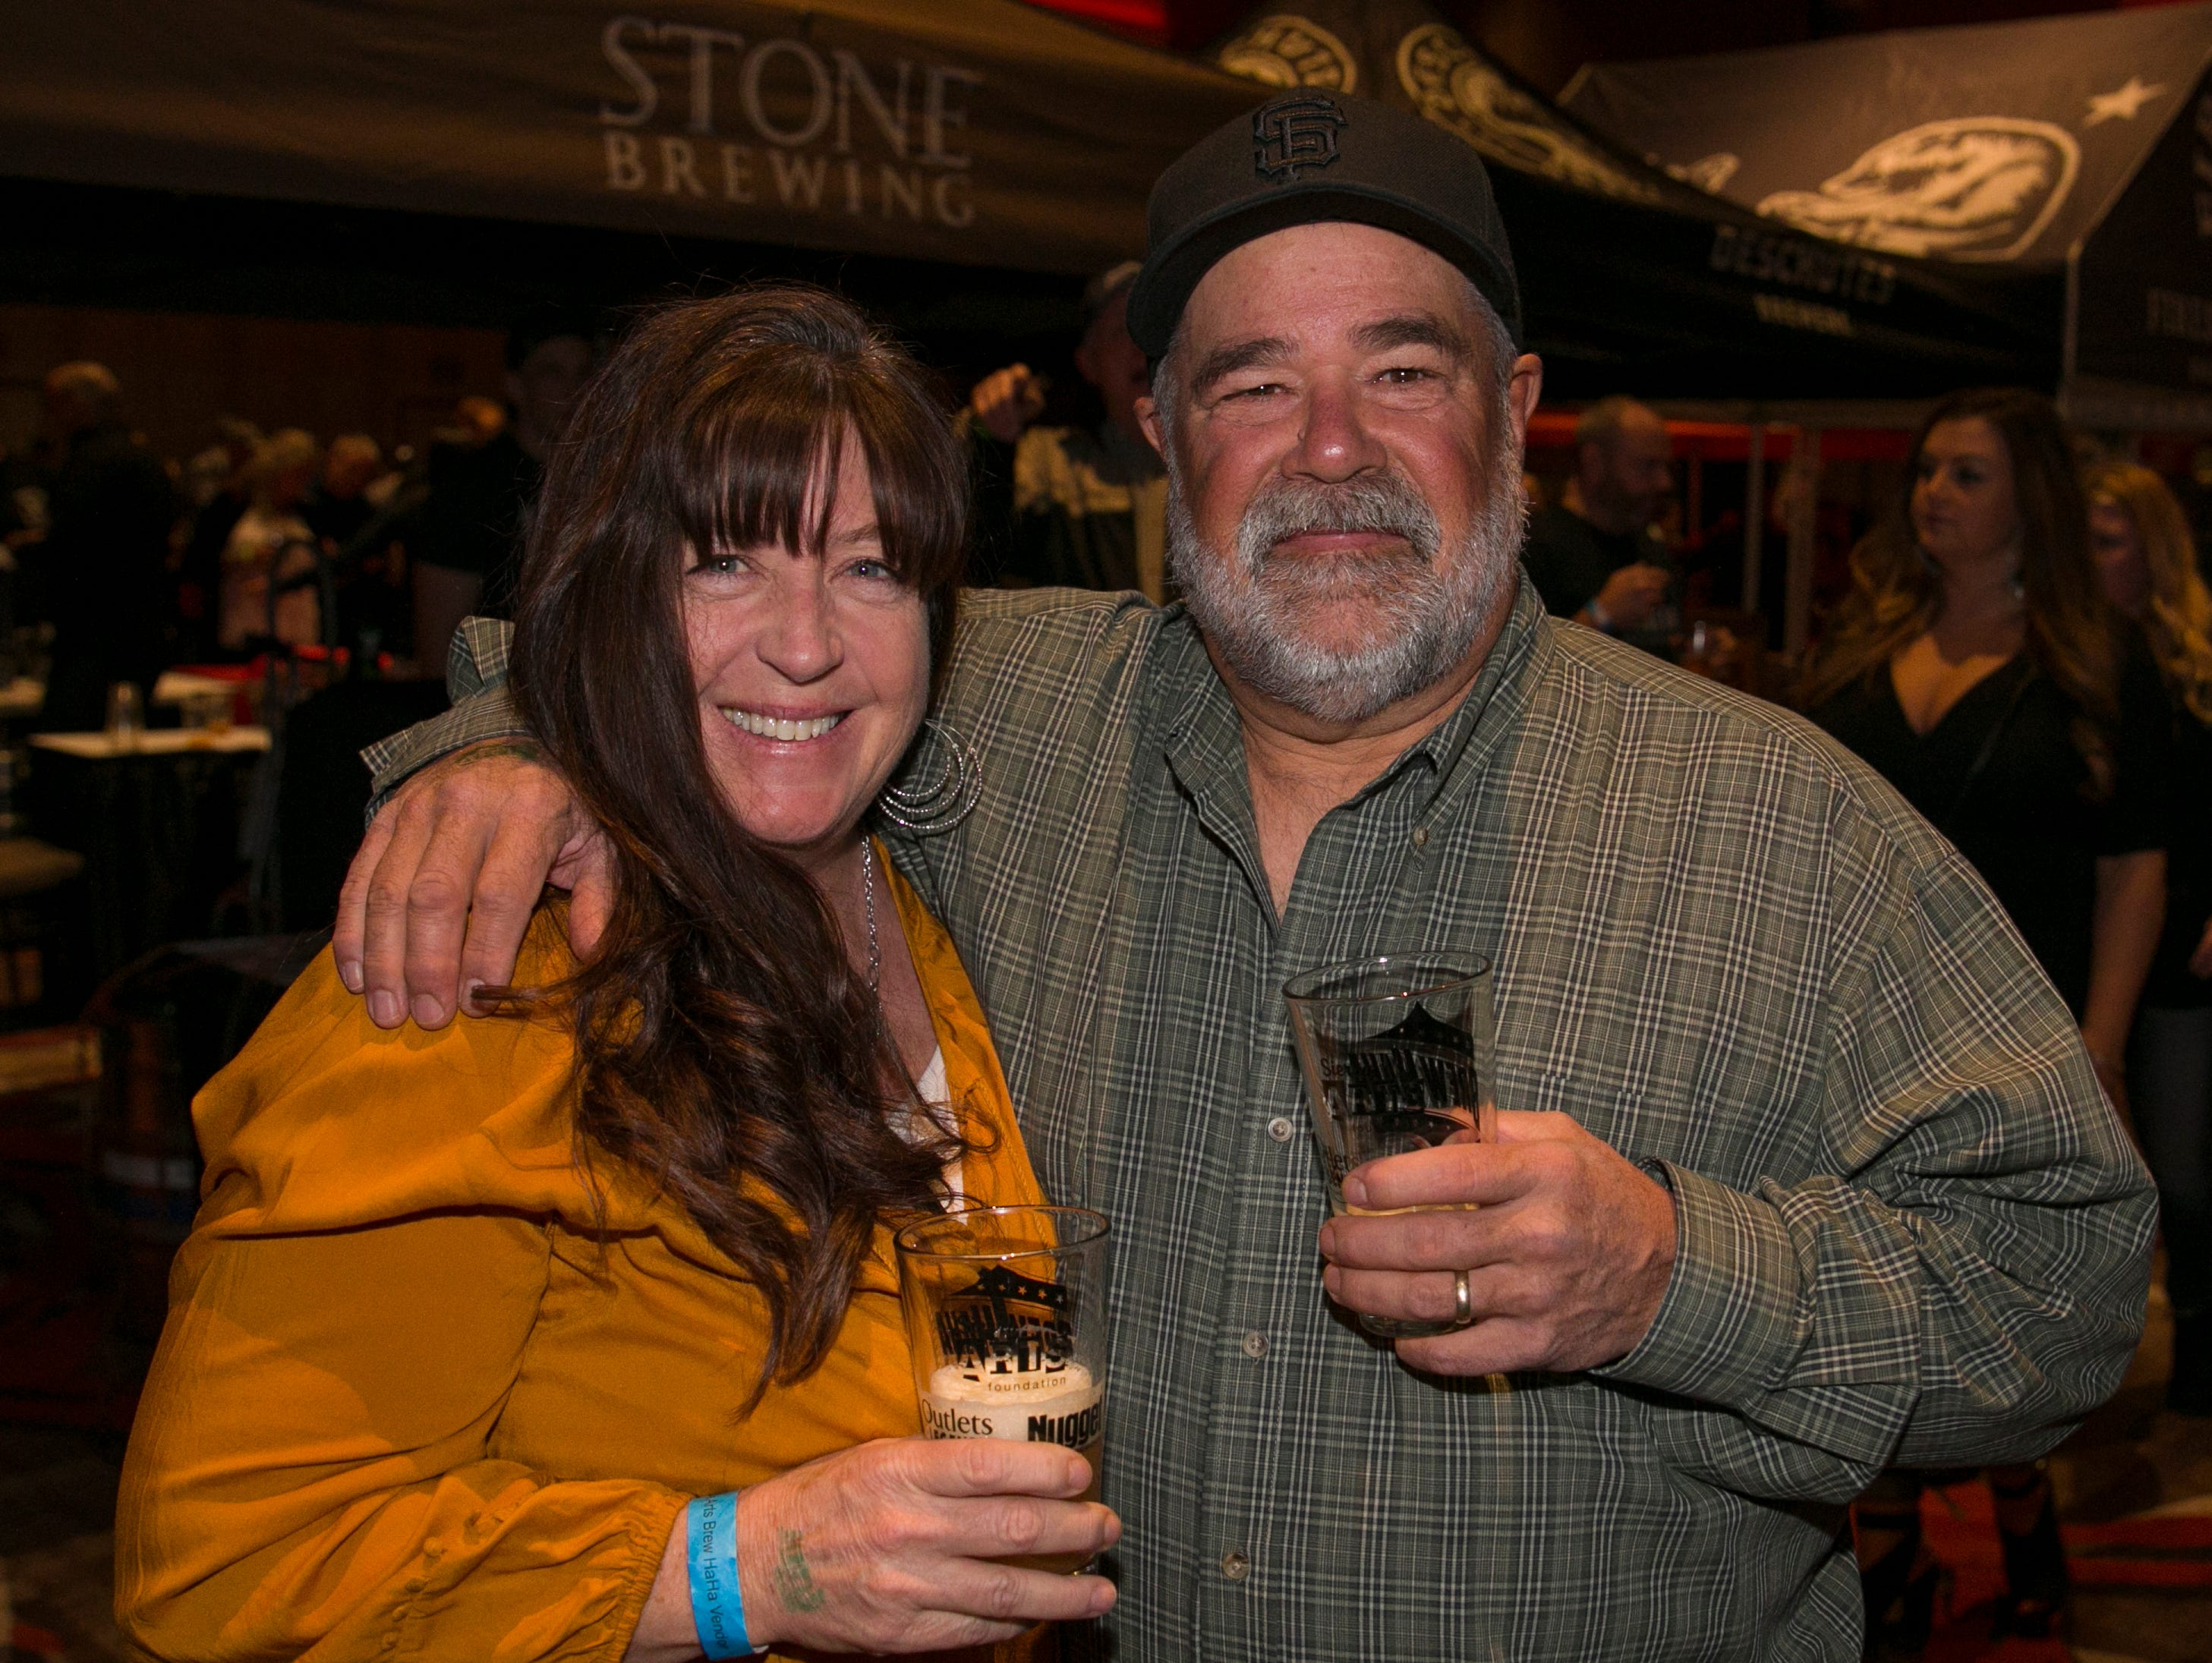 Photos from the Brew Ha Ha on Jan. 26